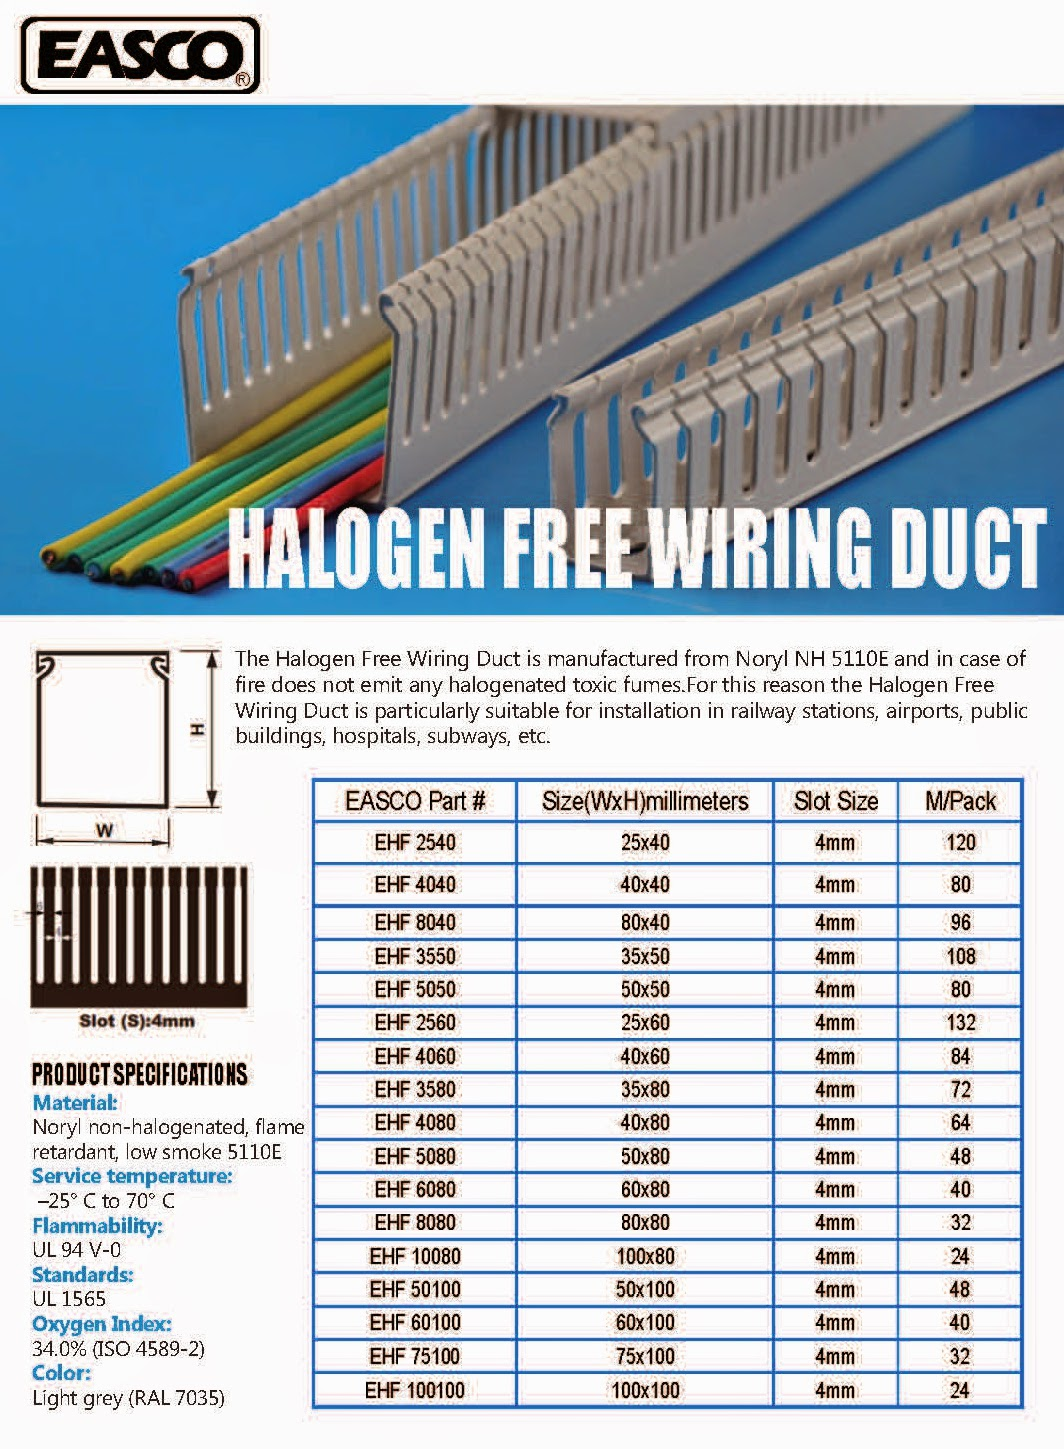 Easco Wiring Accessories Halogen Free Trunking Production The Non Is Particularly Suitable For Installation In Railway Stations Airports Public Buildings Hospitals Subways And Any